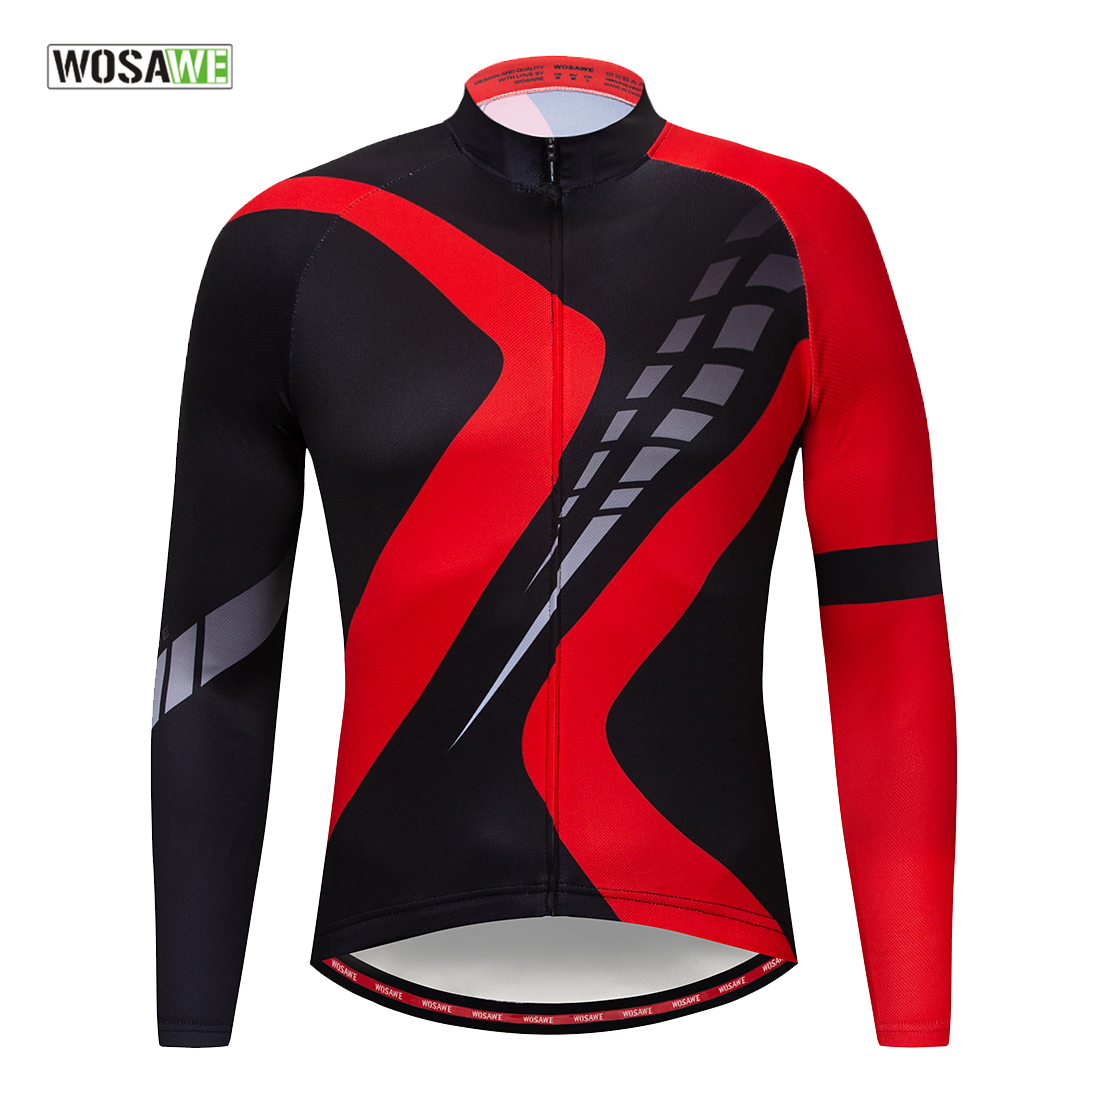 WOSAWE Long Sleeve Men's Cycling Jersey Breathable Autumn Cycling Bicycle Clothing Quick-Dry Mountain Road MTB Bike Clothes title=